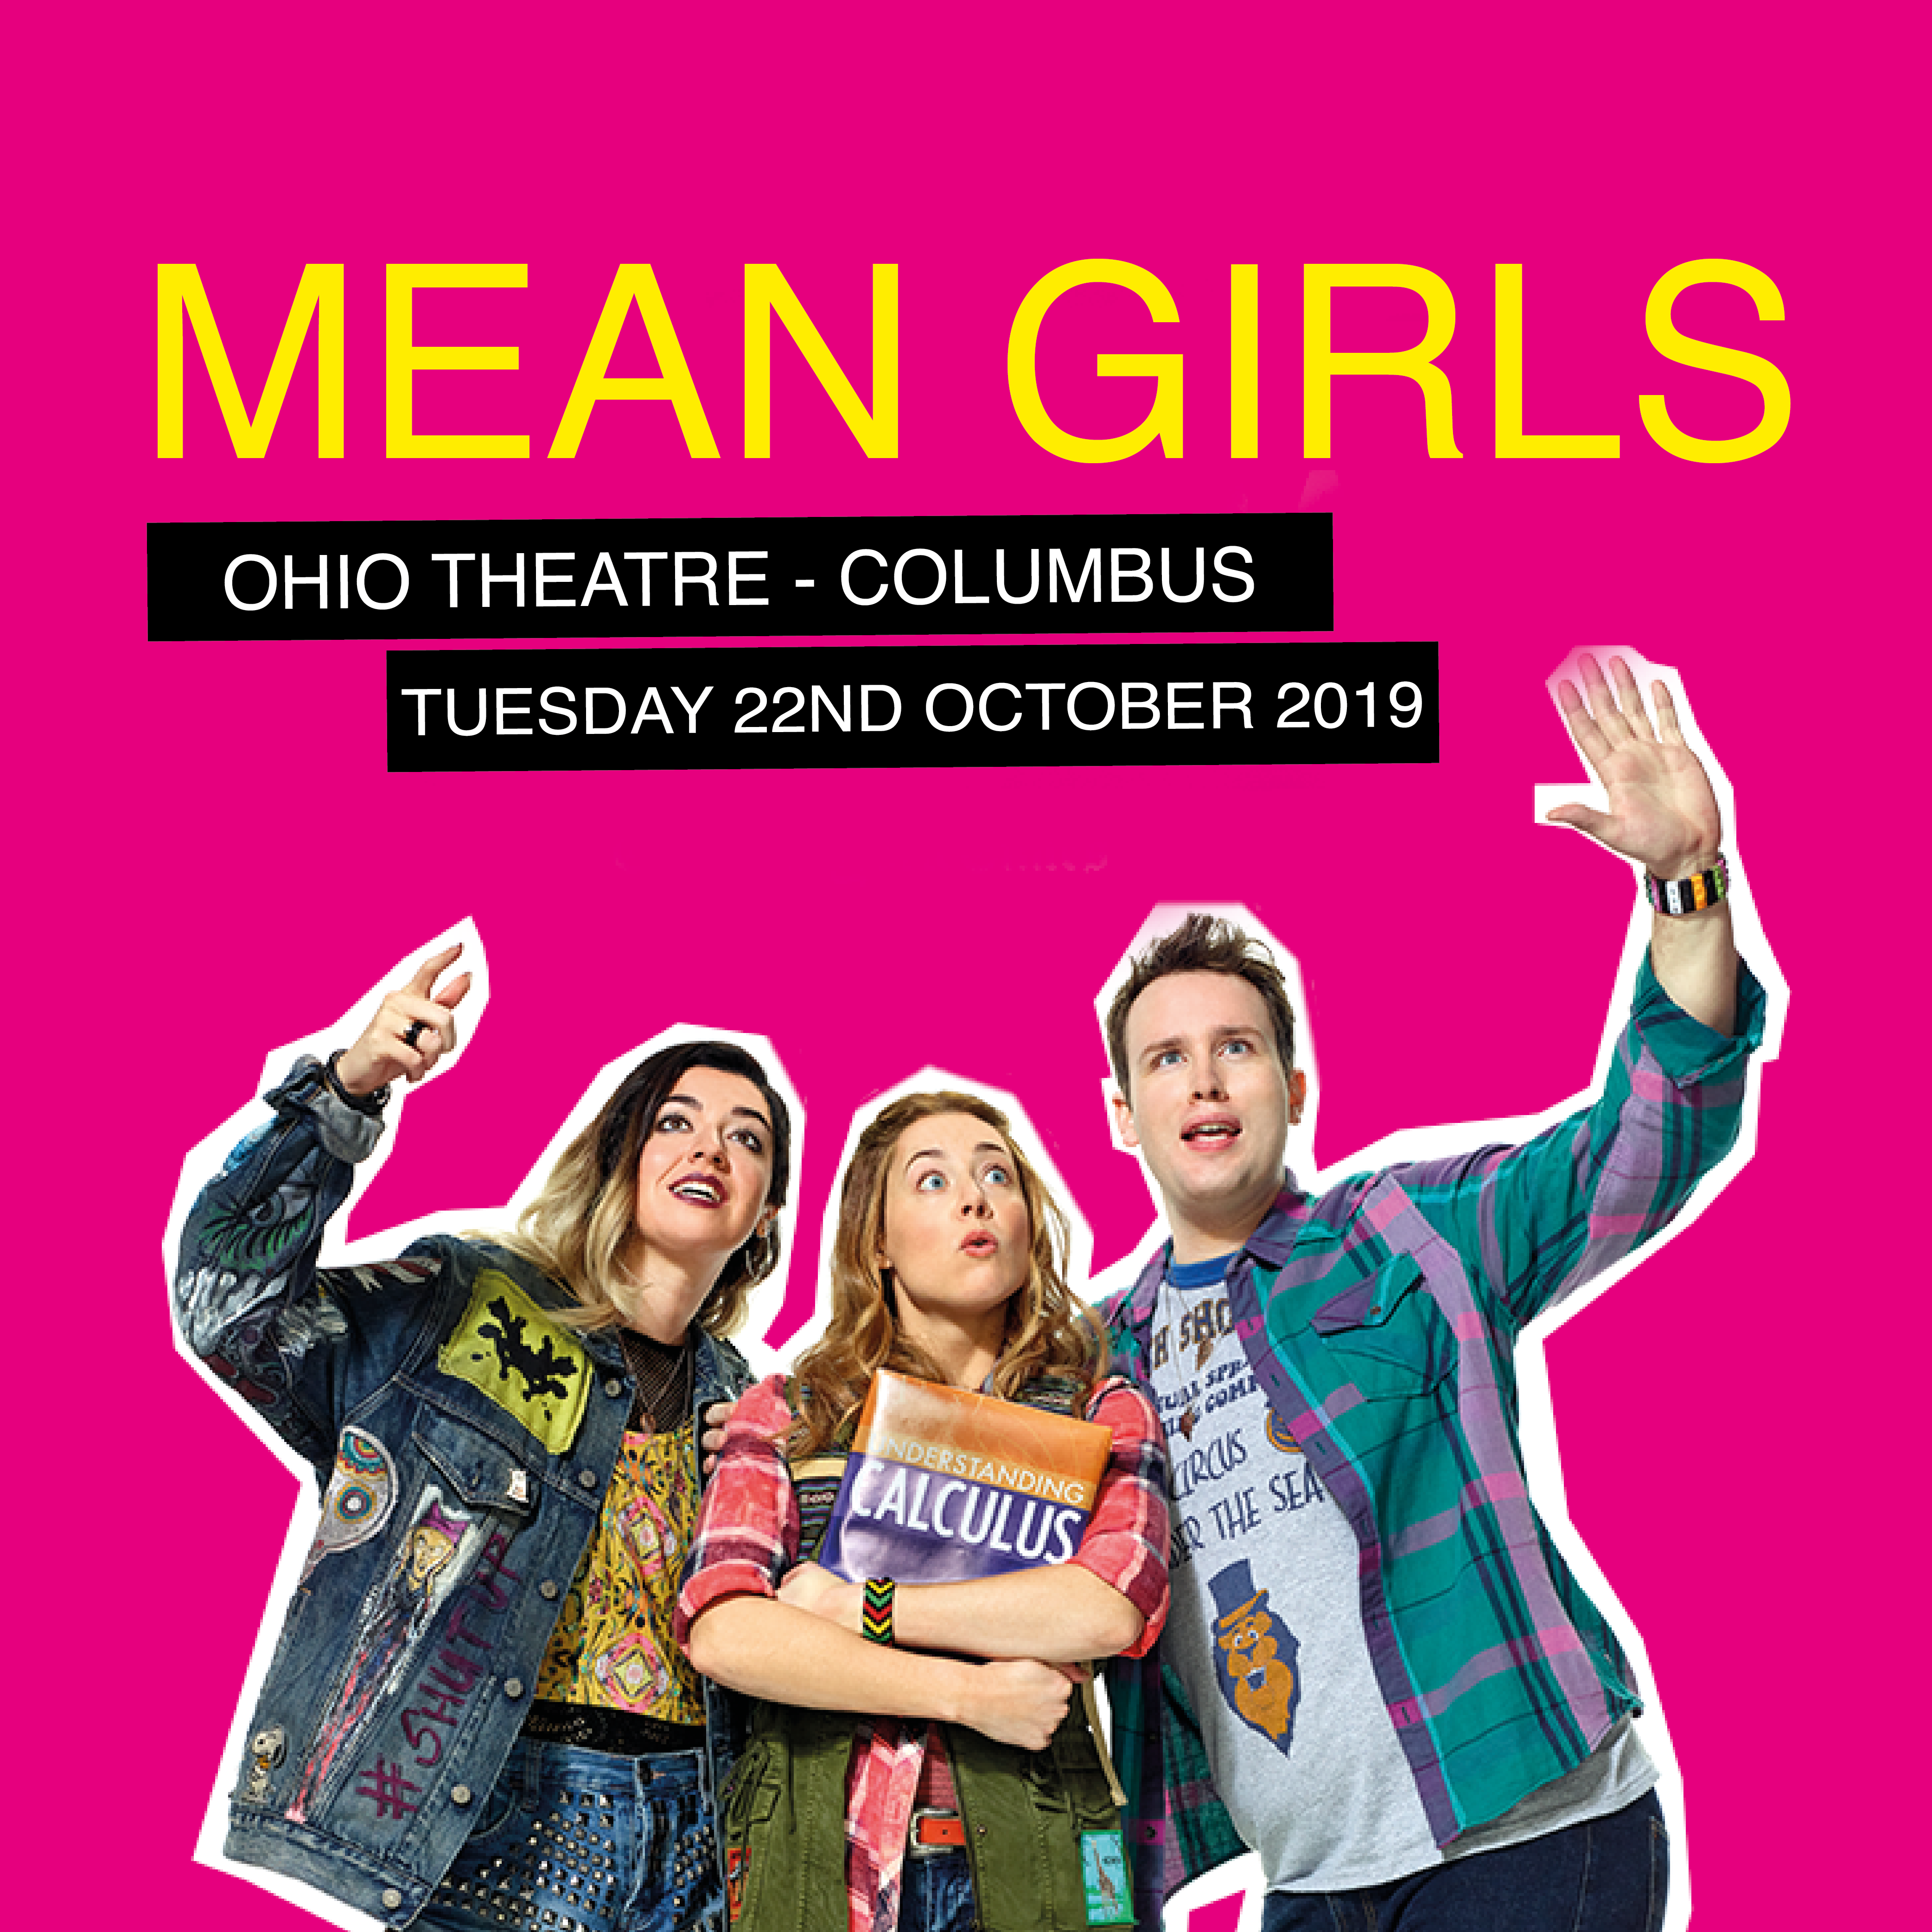 Mean Girls at Ohio Theatre - Columbus